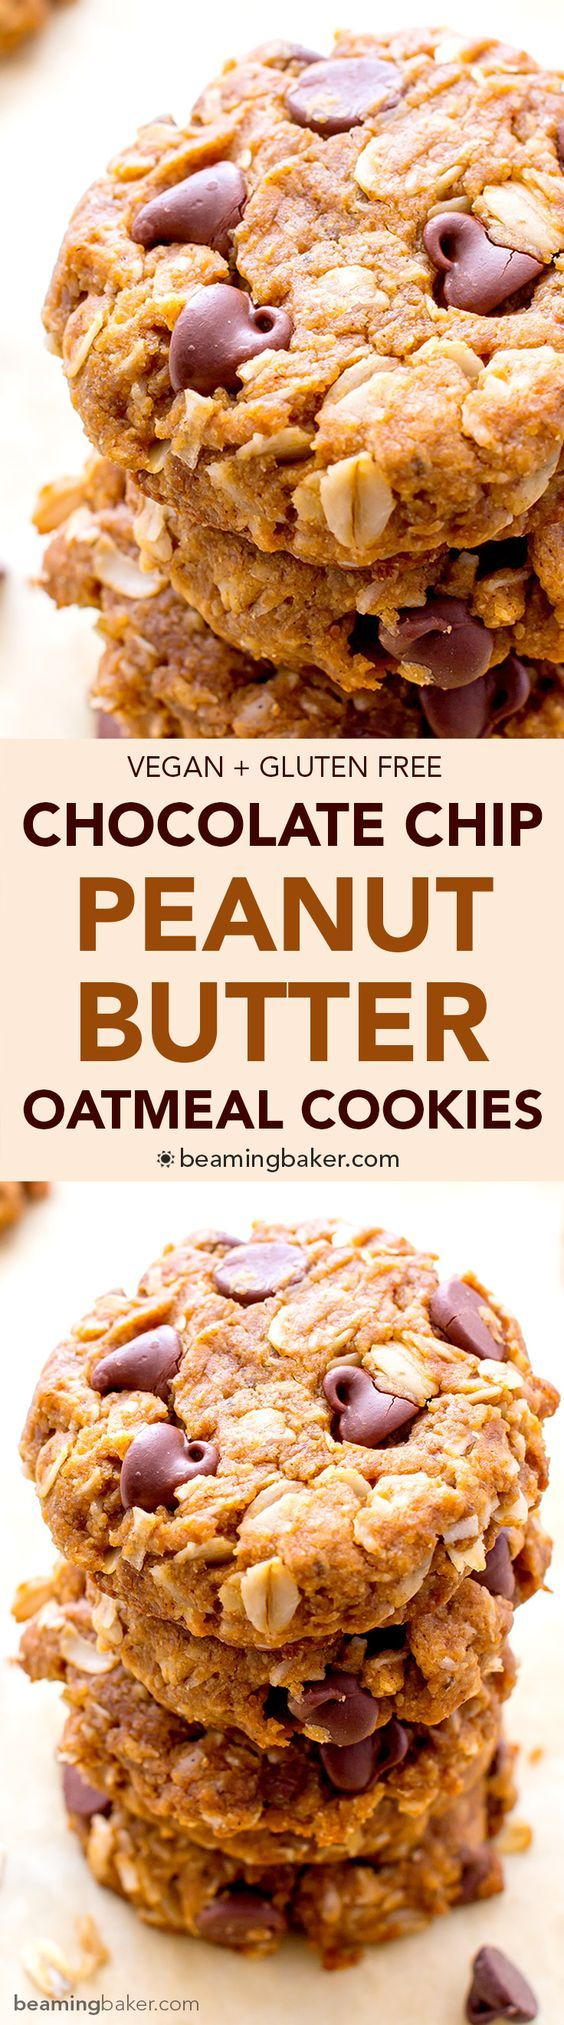 If you're always on the look-out for a vegan and gluten-free chocolate chip cookie recipe, this one may be it! This fantastic recipe from Beaming Baker is kicked up a notch - it's a chocolate chip peanut butter oatmeal cookie. Doesn't that sound amazing?! Check it out.